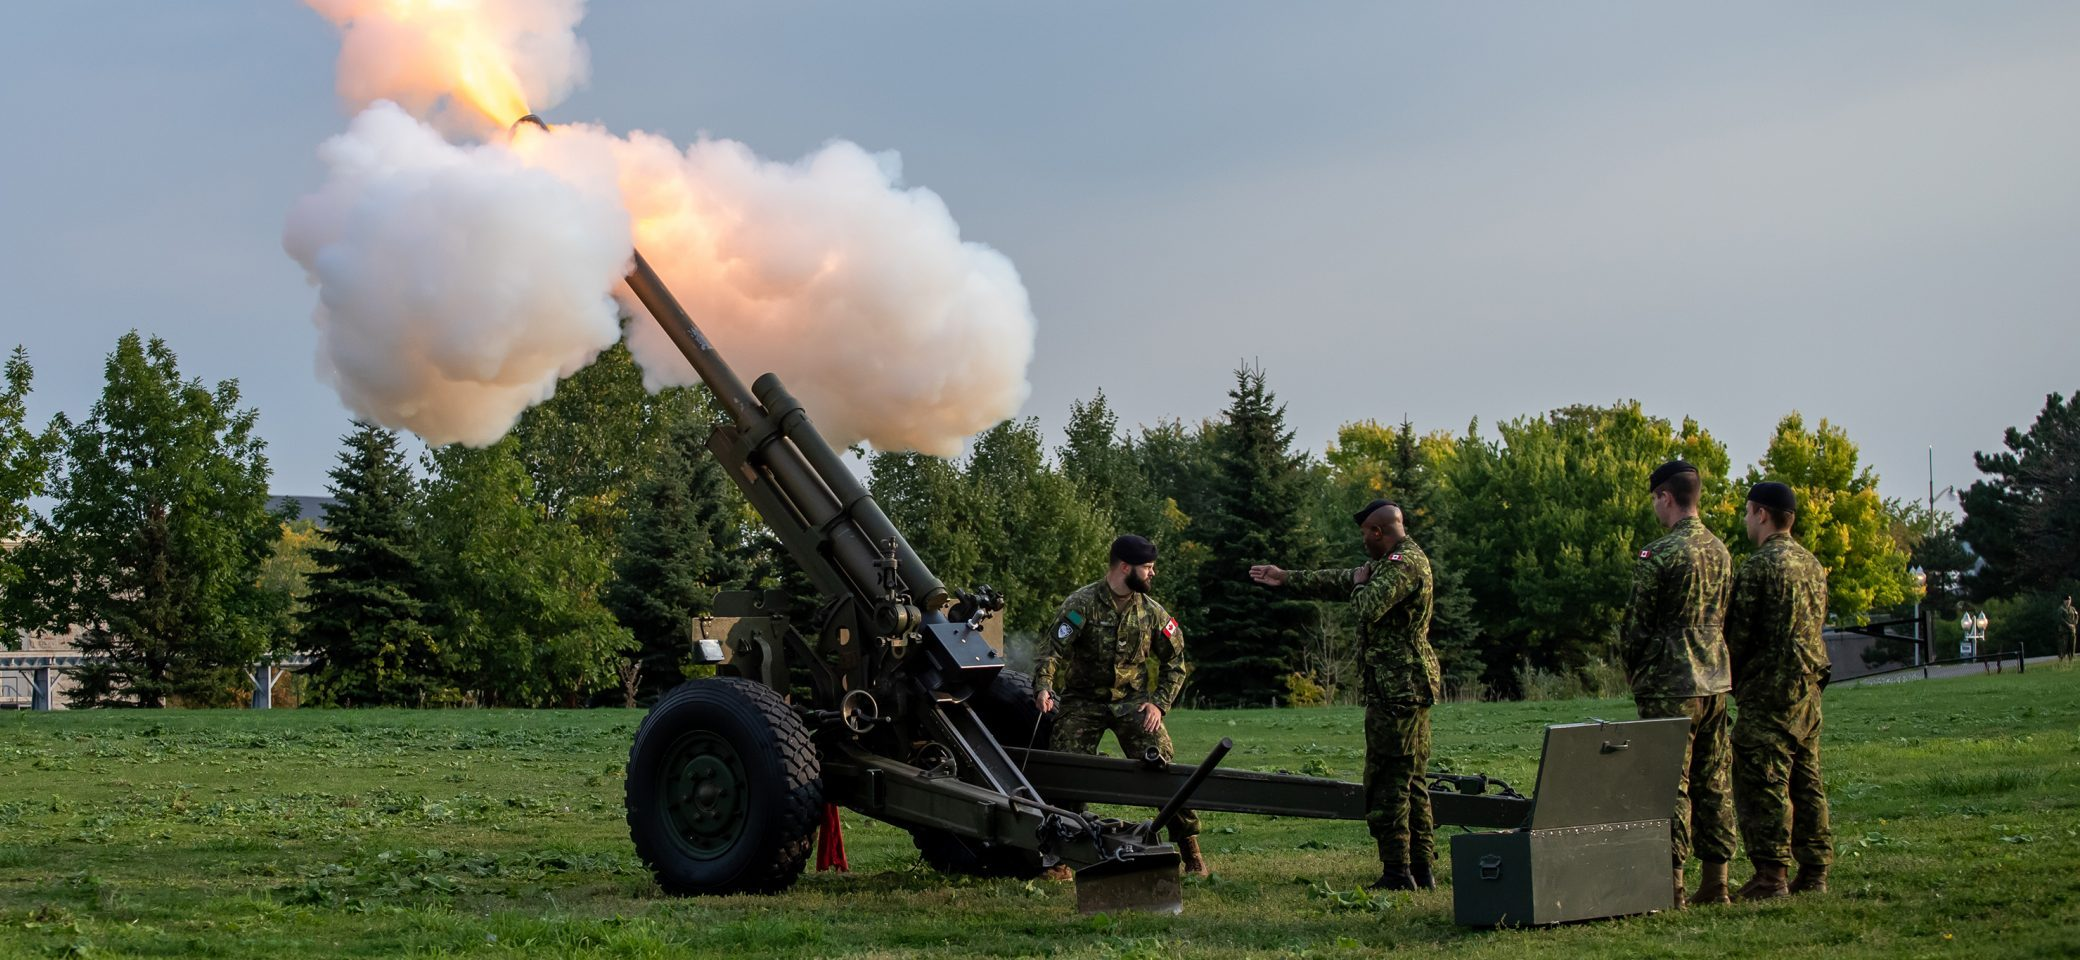 Howitzer at 2019 event